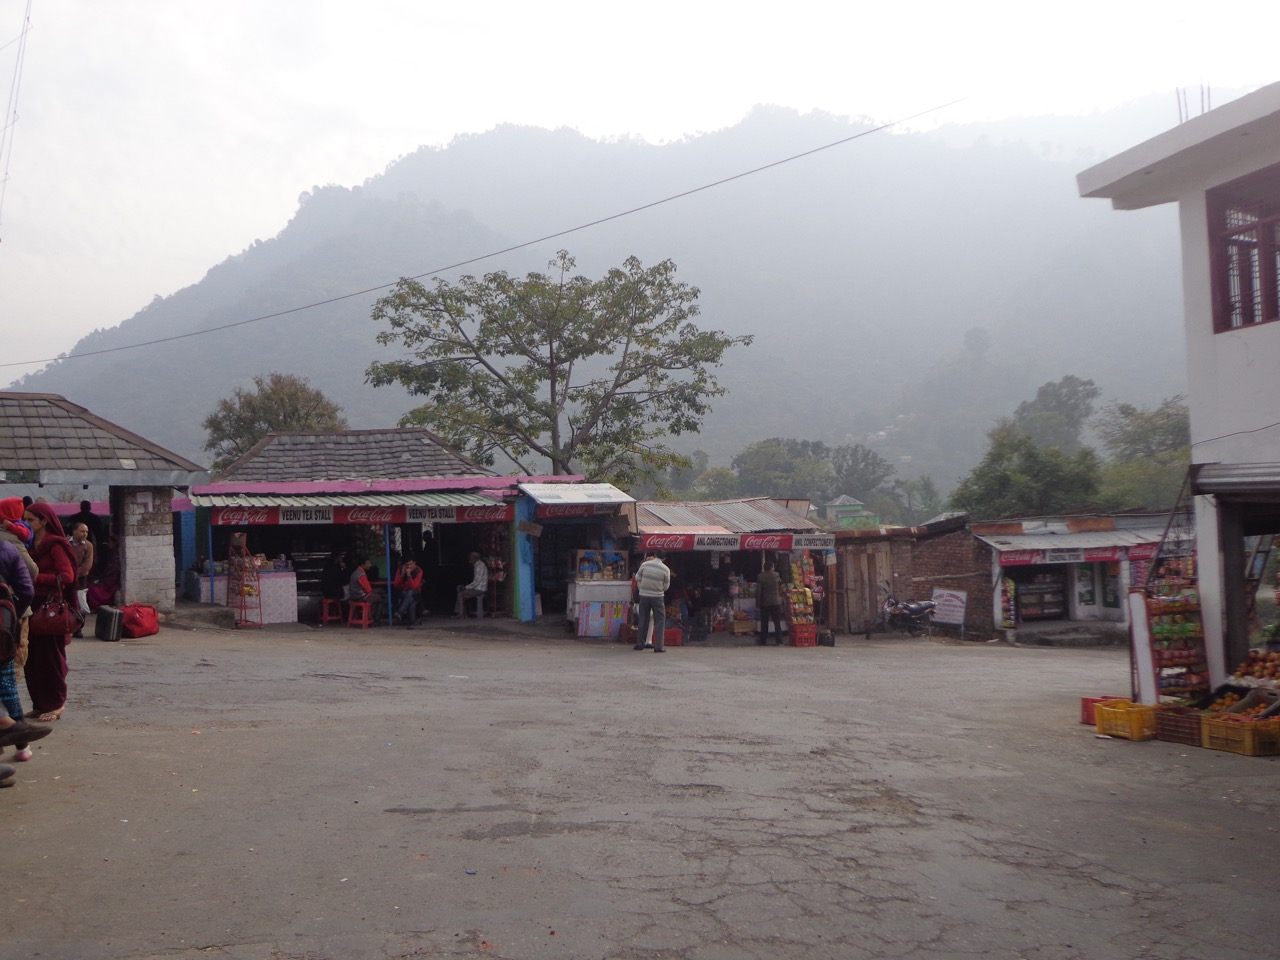 Lahru has only a handful of shops. The foggy mountains make a picturesque background.